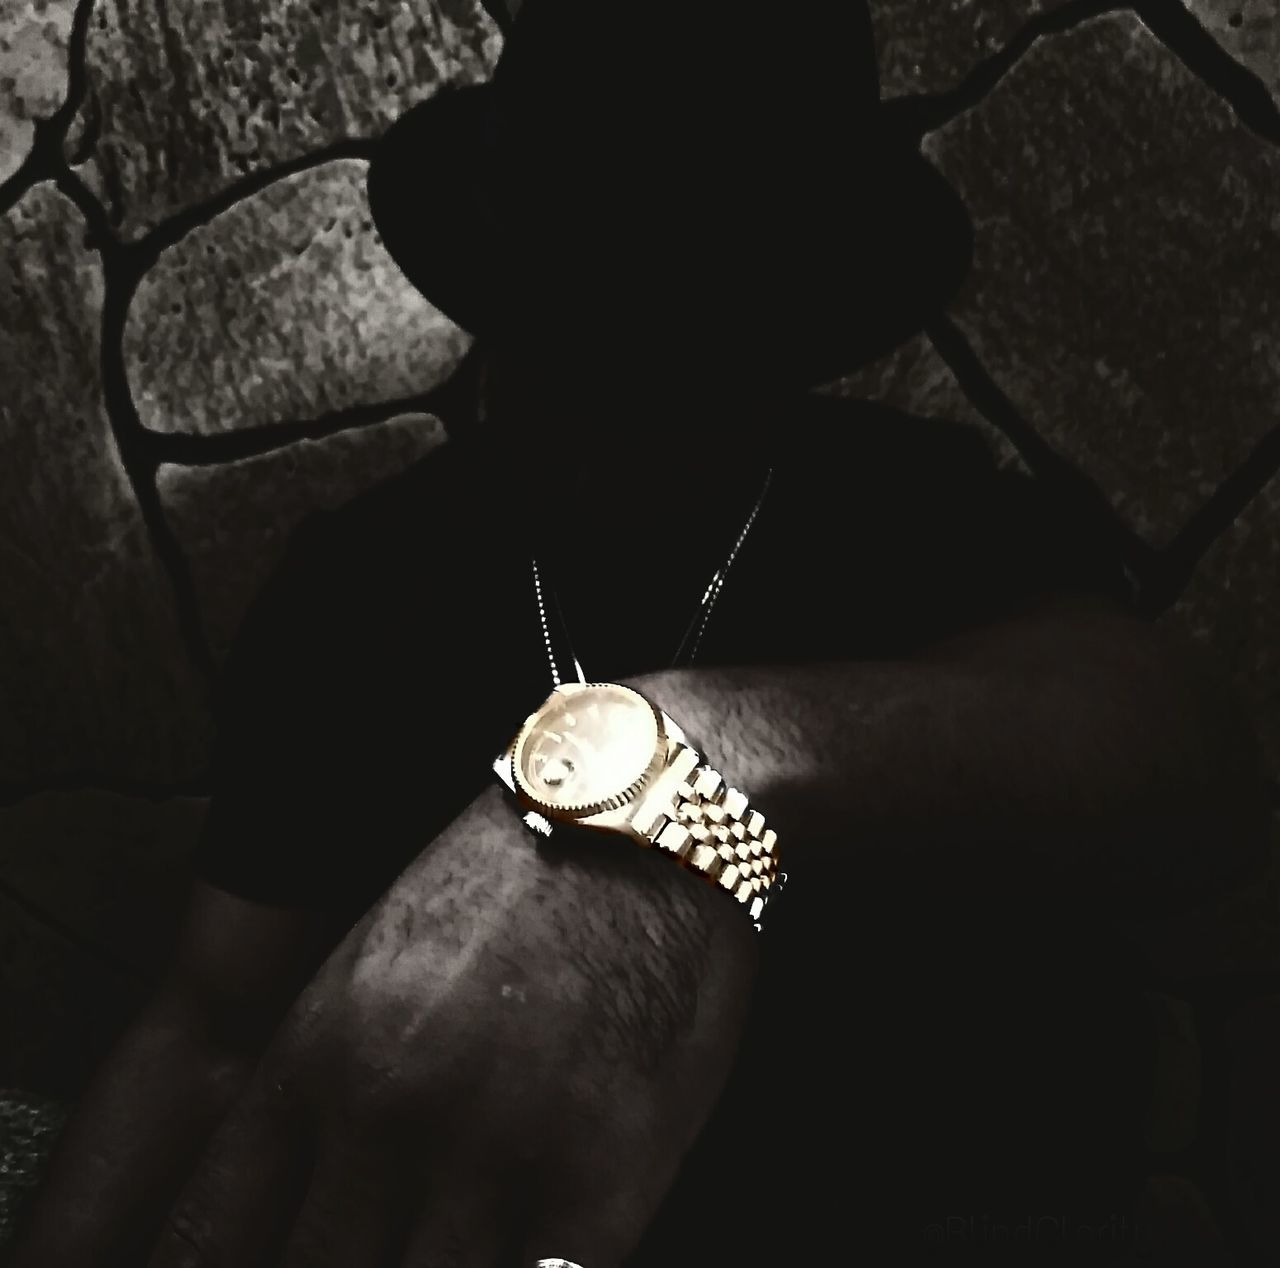 Dark Times Exclusiveview Timeless Watch Gold Rolex Jewelry Necklace Dark Shadow Showcasejuly Beauty BlindClarity Color Blackandwhite Eyegotit Fresh Urban Style Classic Design Technology EyeEm Best Shots Conretejungle Pose Fine Art Photography